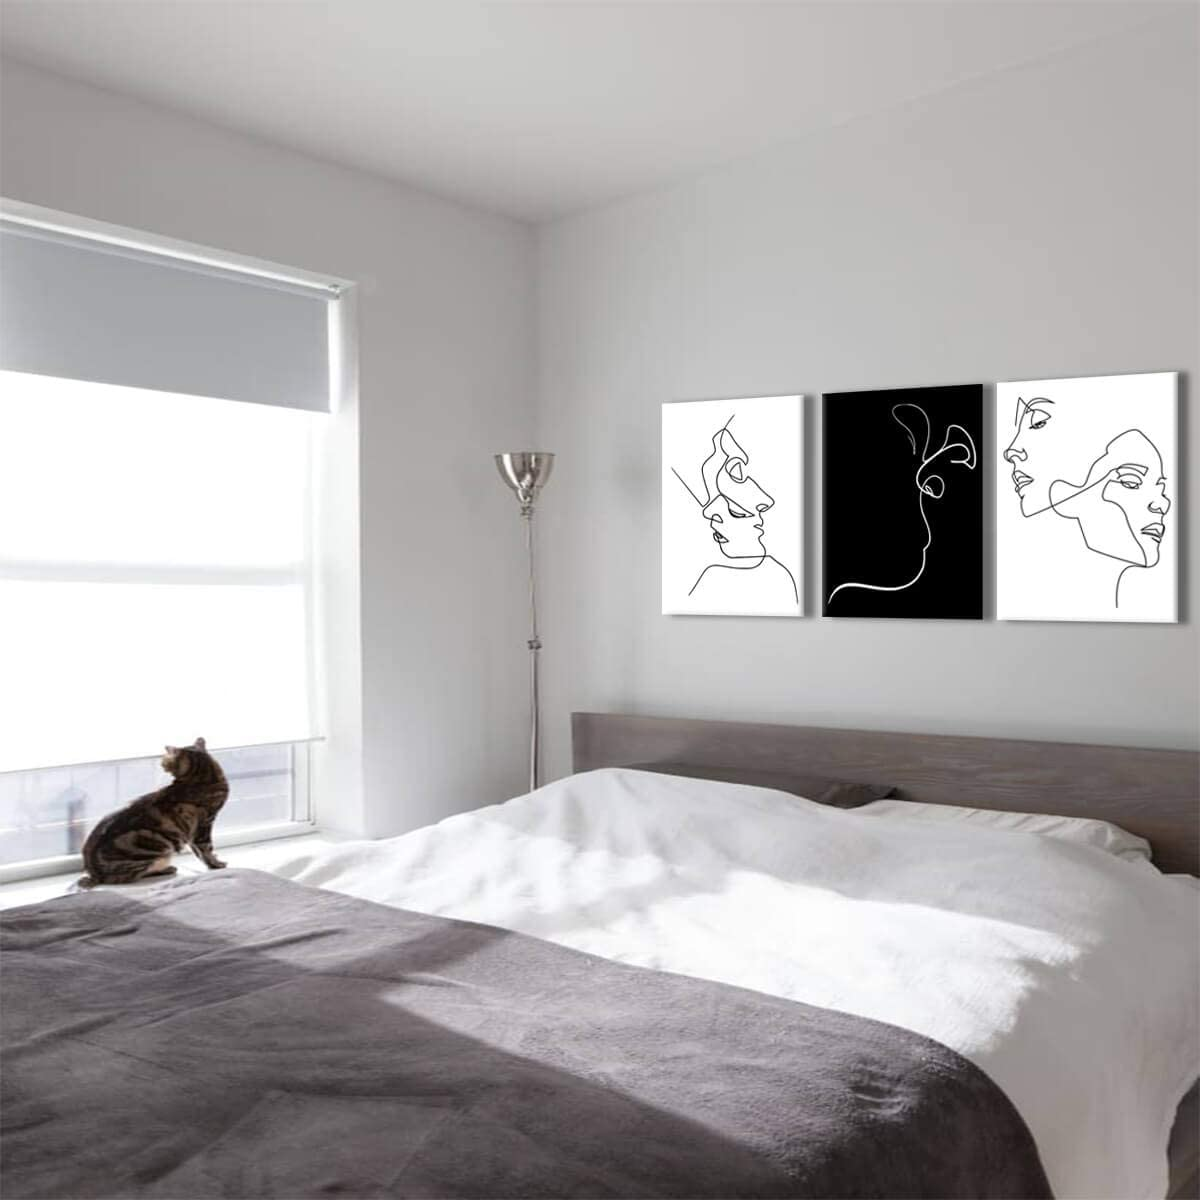 Amazon Com Black And White Wall Art Line Drawing Modern Minimalist Wall Decor For Couples Bedroom Lovers Abstract Art Wall Prints Aesthetic Room Decor Stretched Artwork For Home Walls Canvas Wall Art For